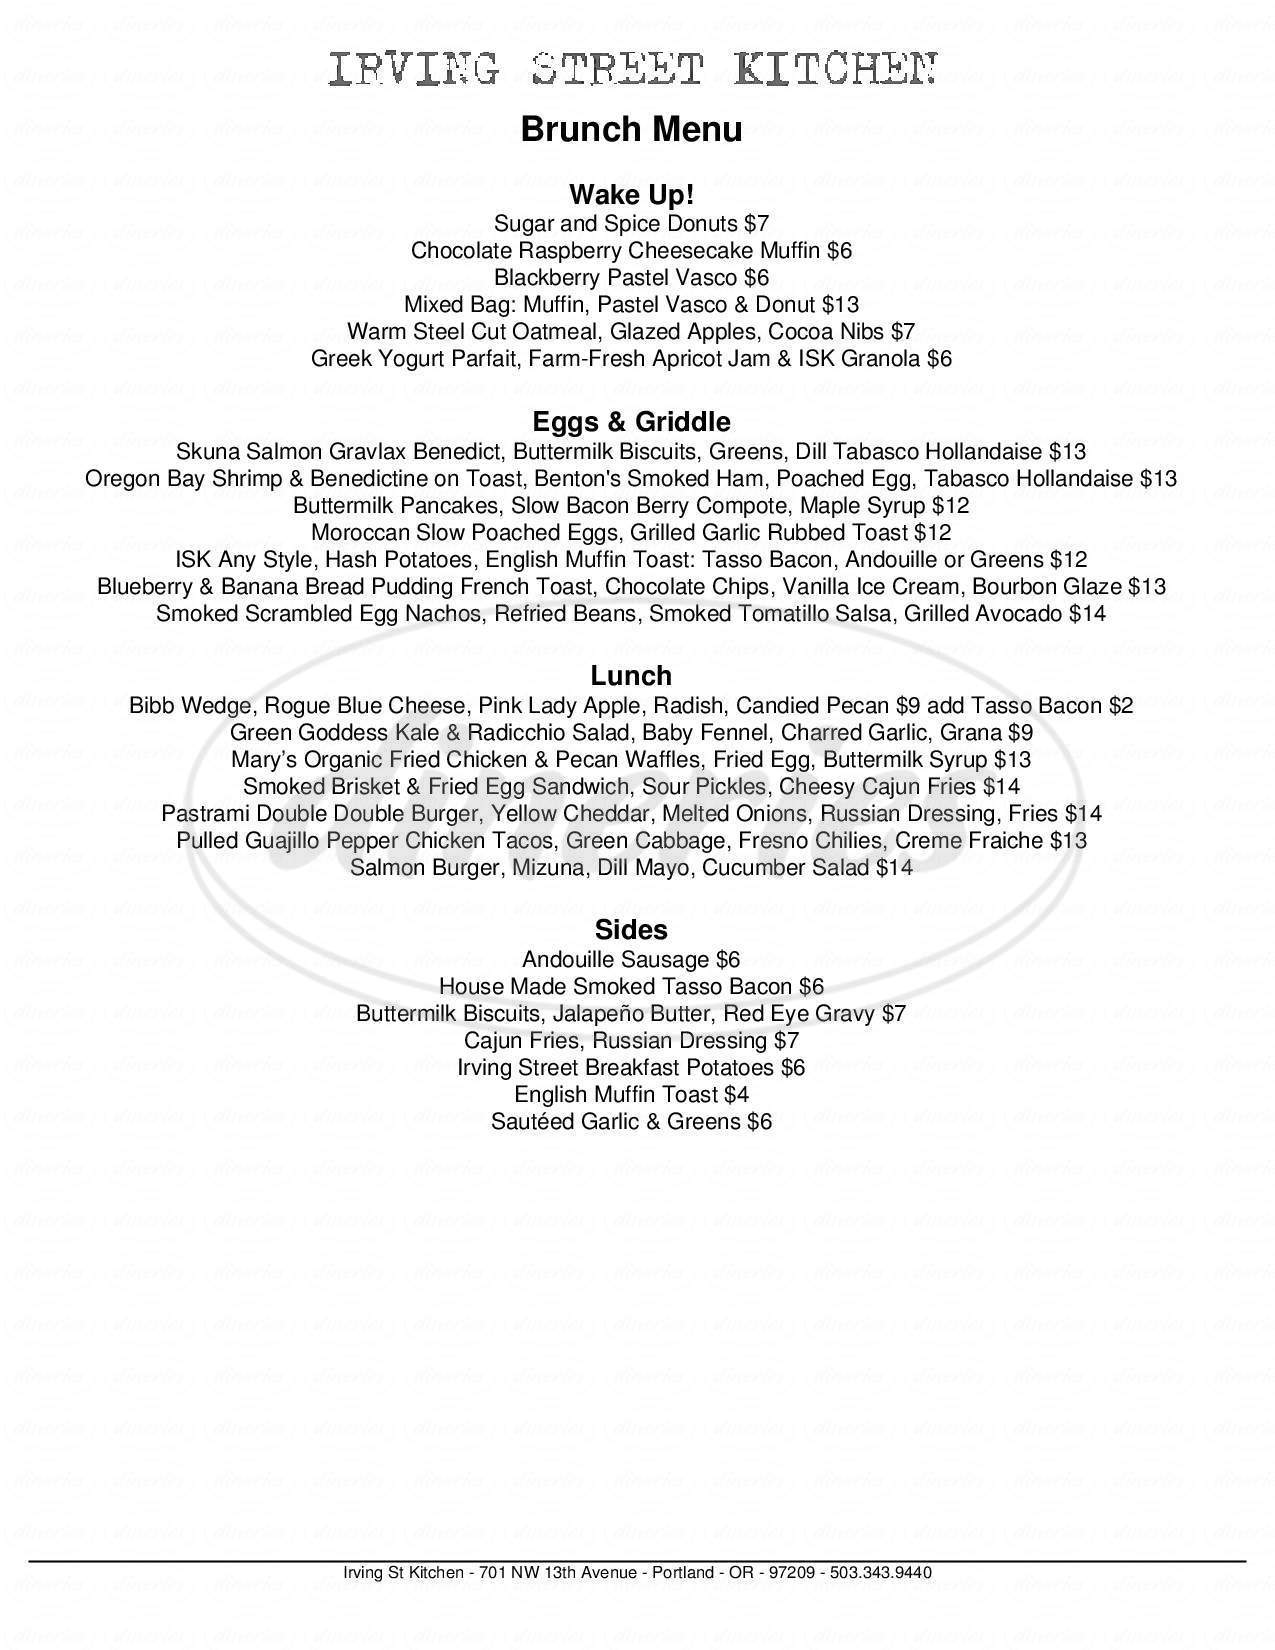 menu for Irving St. Kitchen